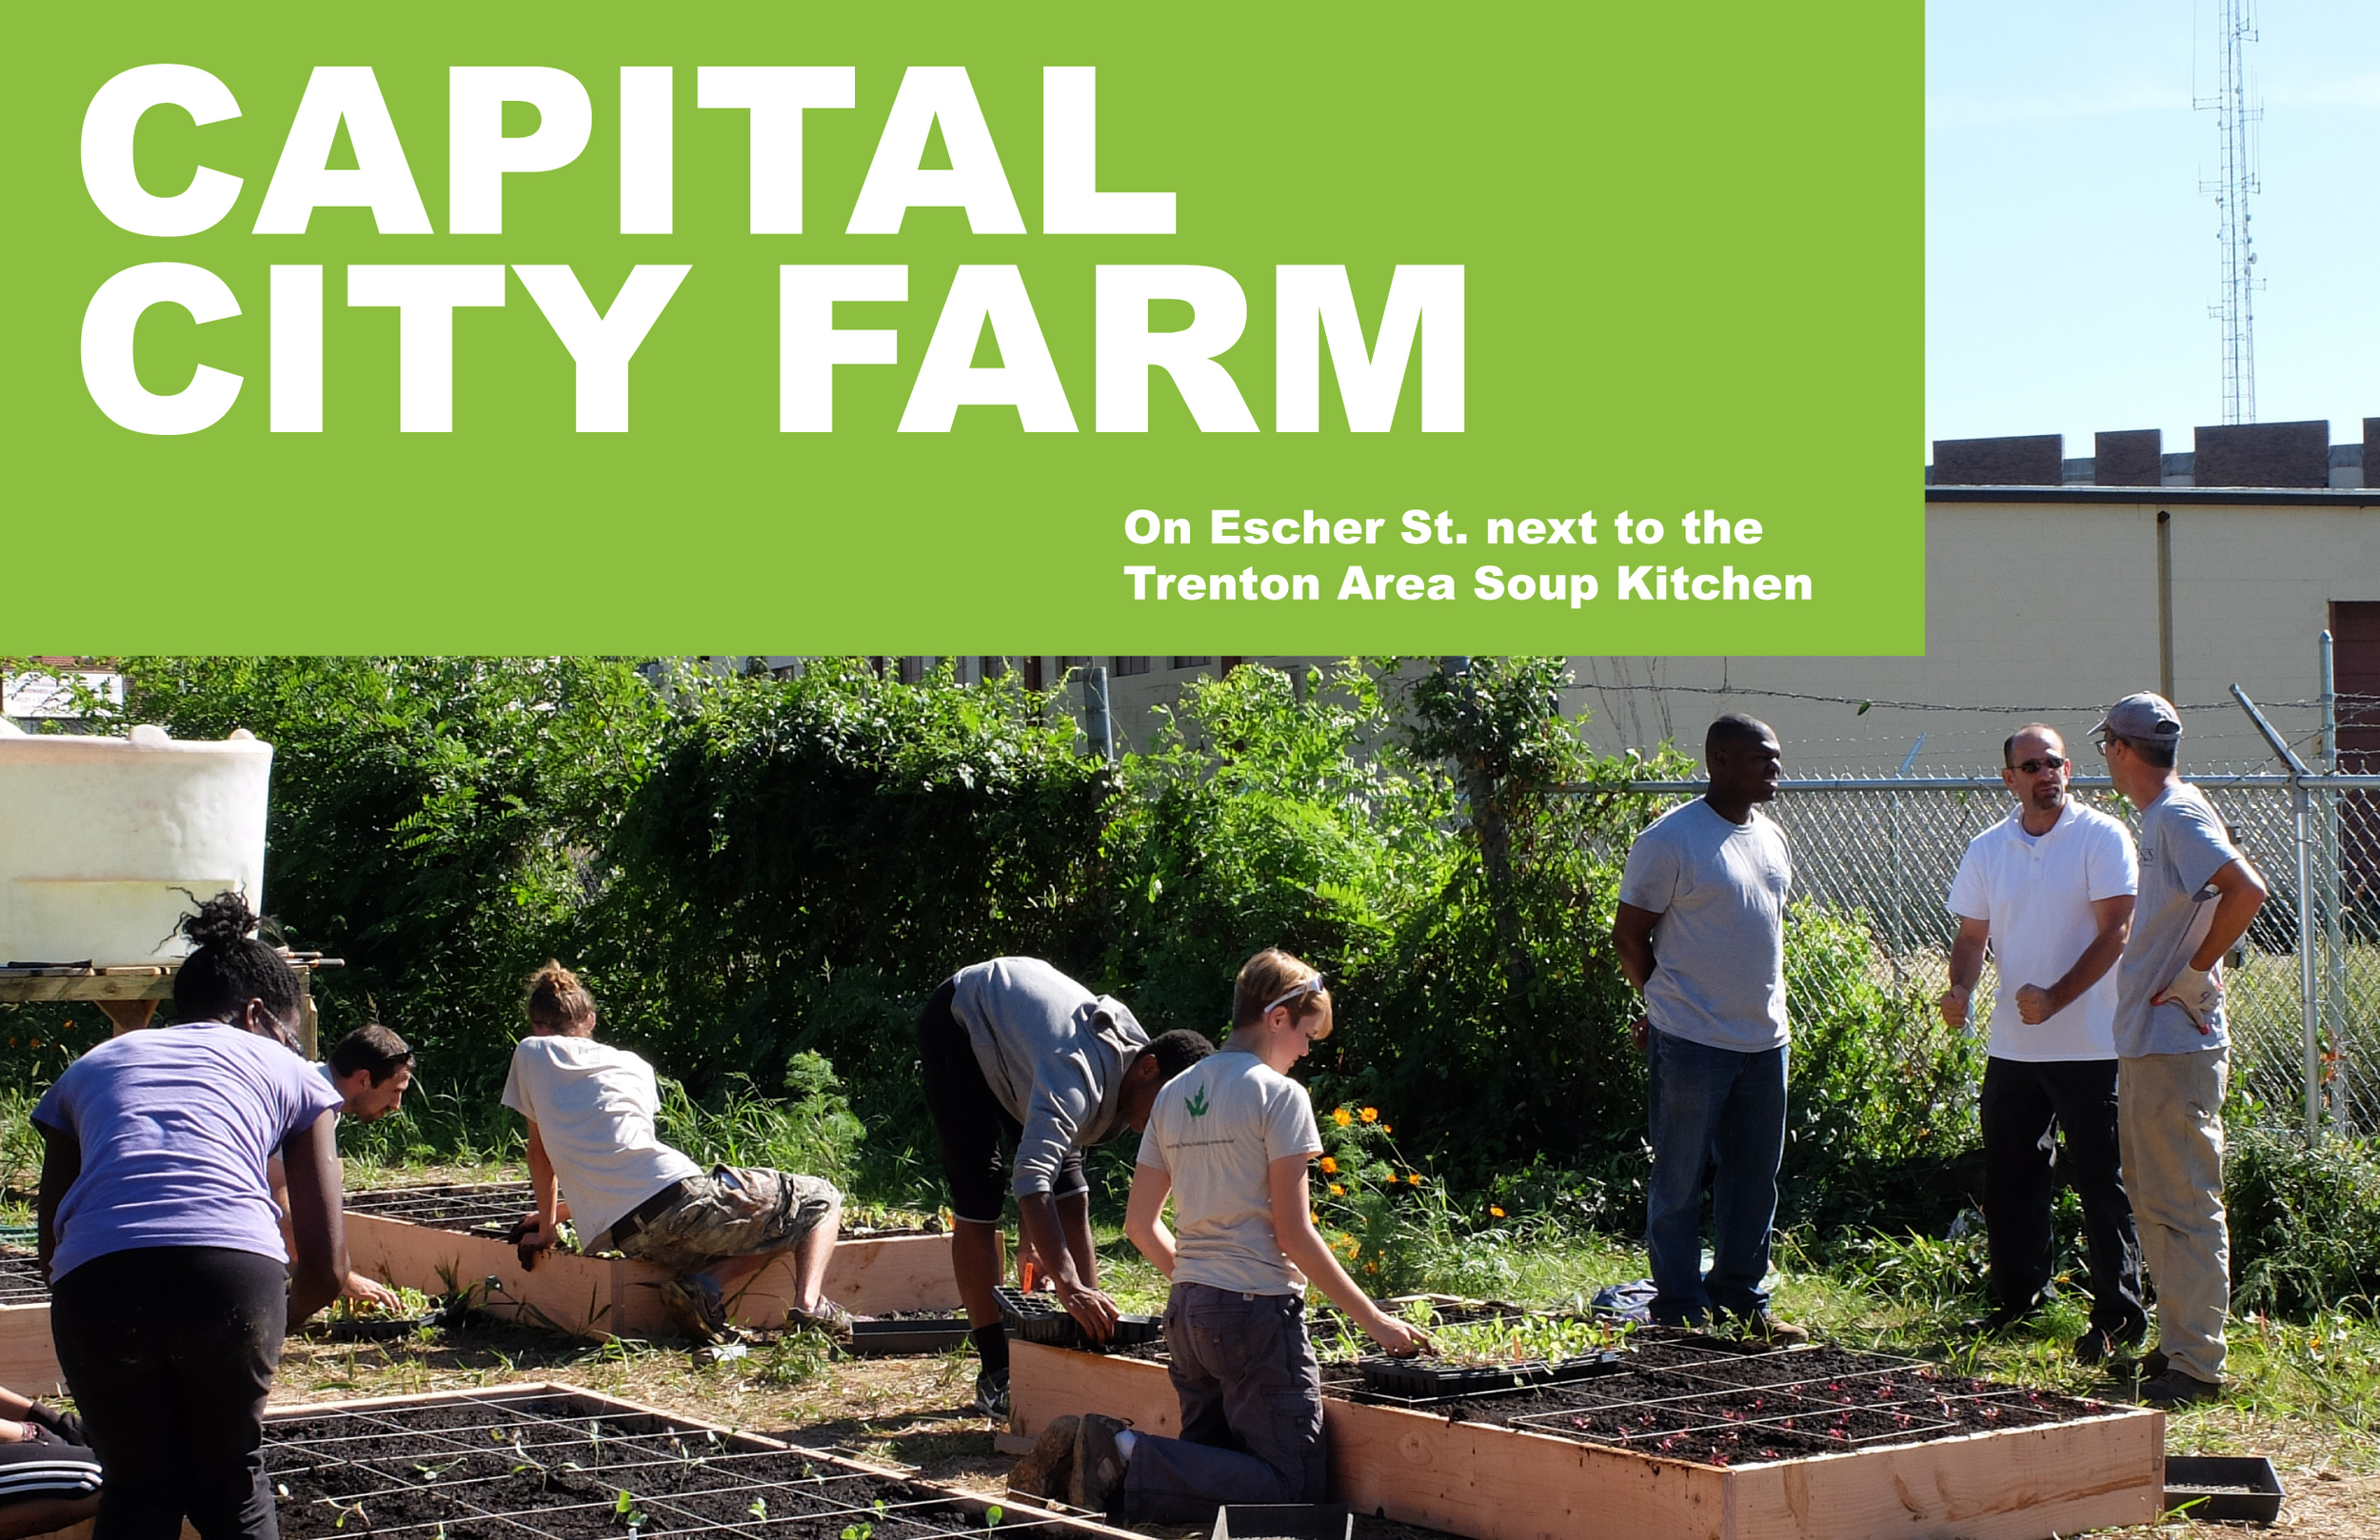 AN URBAN FARM THAT WILL SERVE THE PEOPLE.